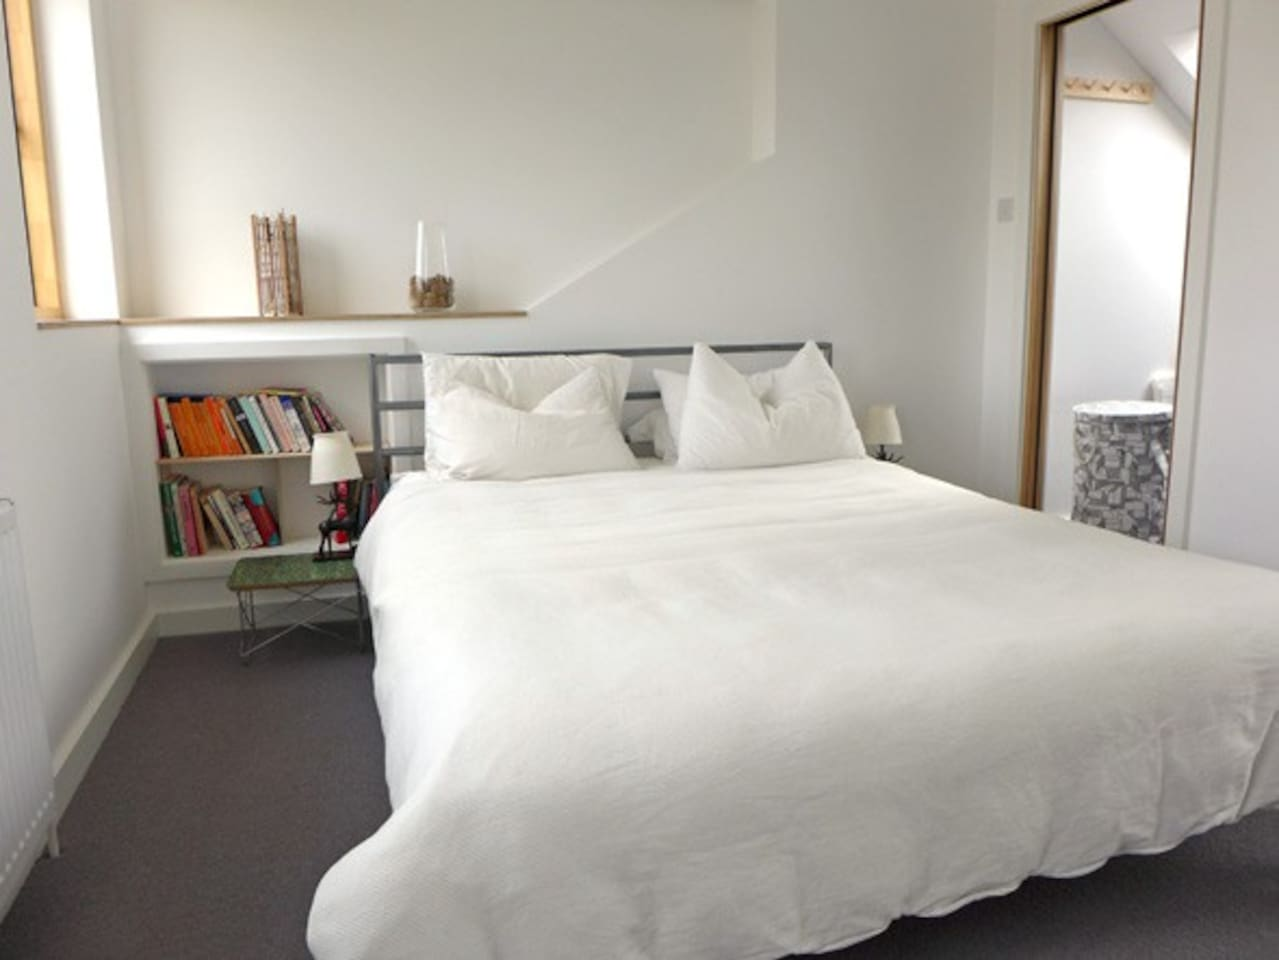 Room - with walk in closet and private en-suite shower room, on top floor.